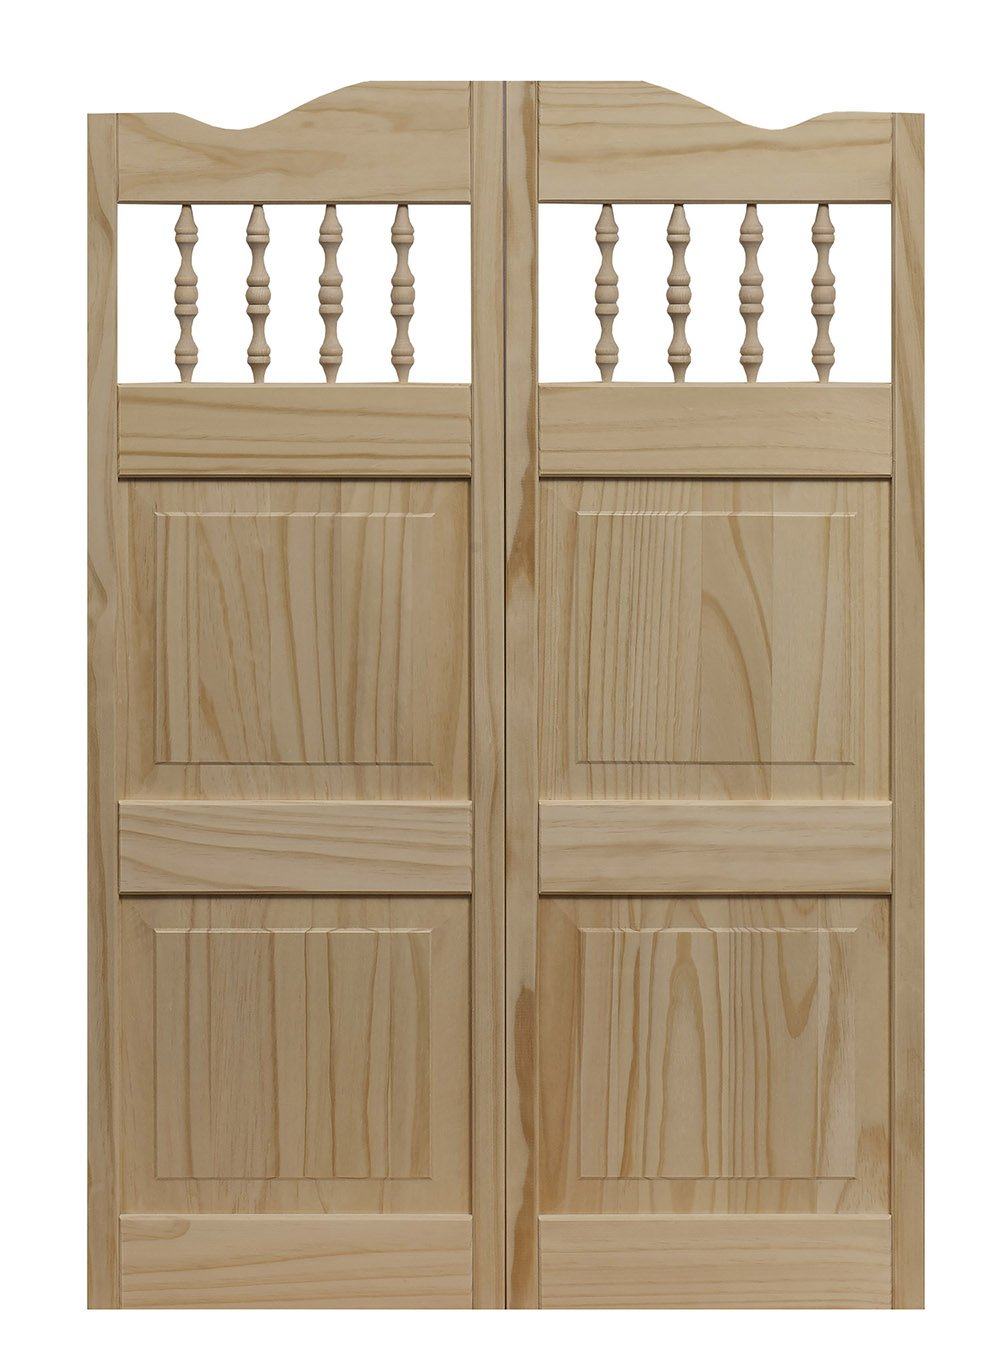 Pinecroft 848442 Carson City Café Interior Swing Wood Door, 24'' x 42'', Unfinished